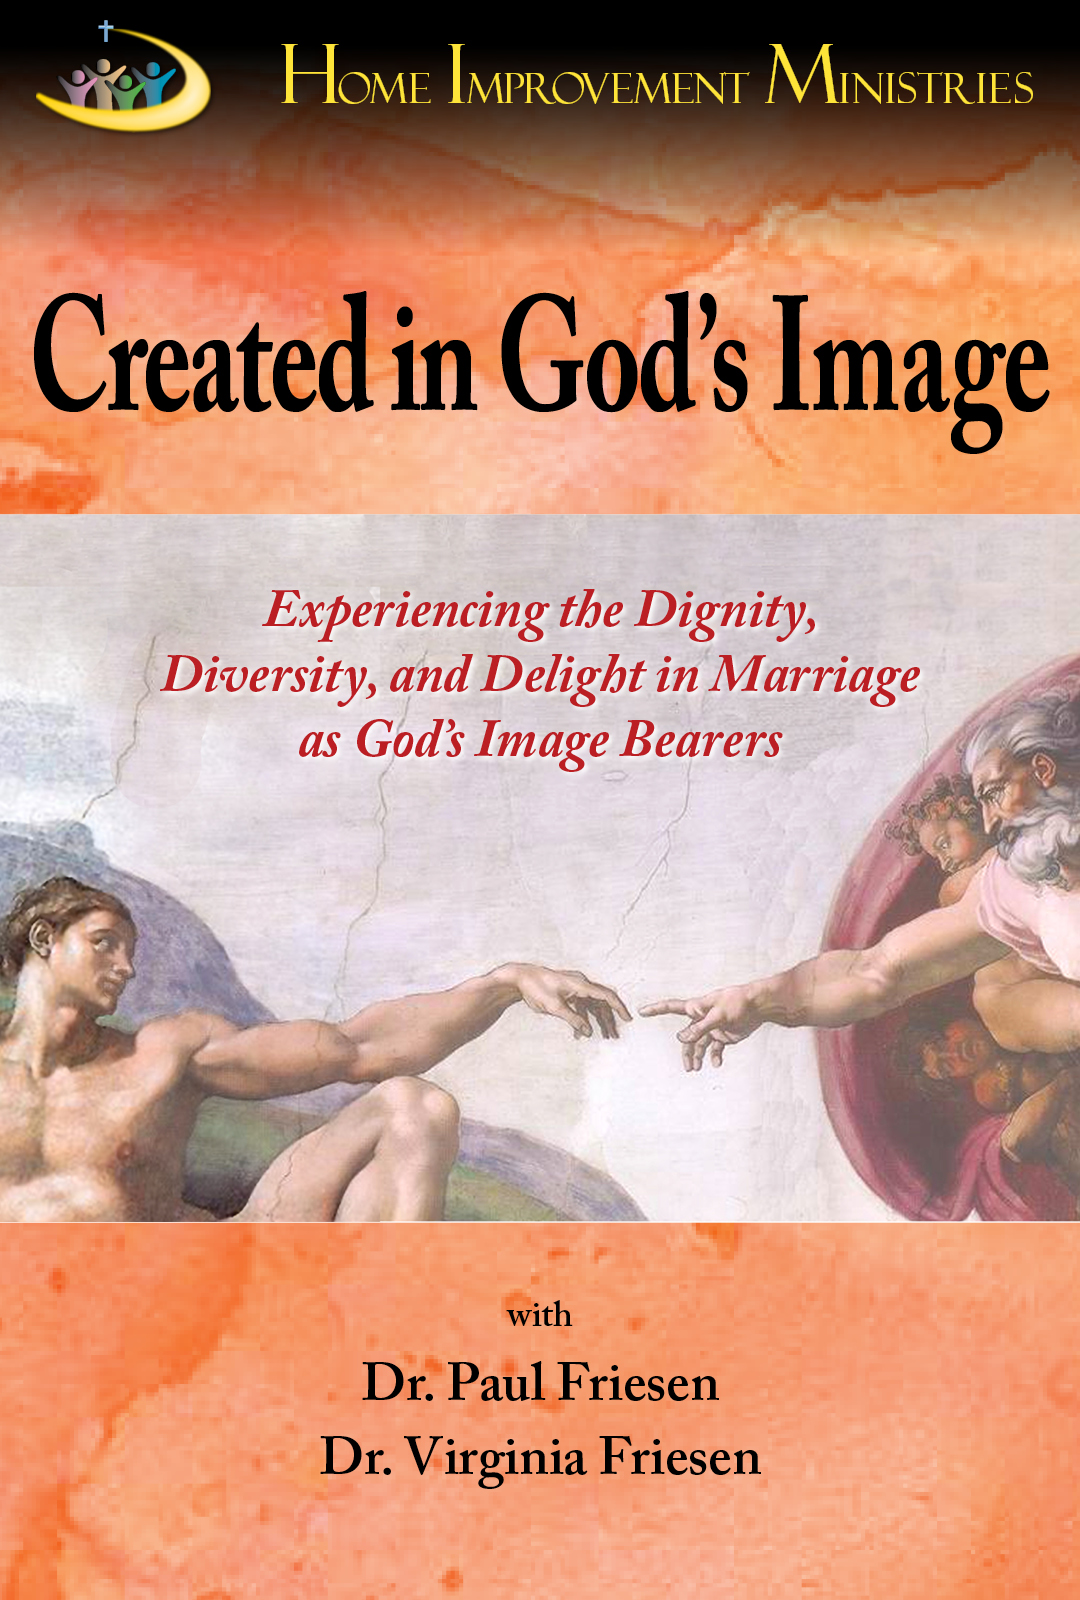 Created in God's Image - Adam and Eve were created in the image of God, in the image of the Trinity. Since we also are created in the image of the Godhead, perhaps we ought to more fully reflect the character and interaction they experienced. This video series will help you practically experience the unity God designed for us in marriage. Learn how to more fully celebrate your diversity as male and female. Discover how we often, unknowingly, do not treat our mate with the dignity befitting one who is created in the image of the King of Kings and Lord of Lords. Experience the delight of reflecting God's image to your spouse and becoming all God wants you to become.